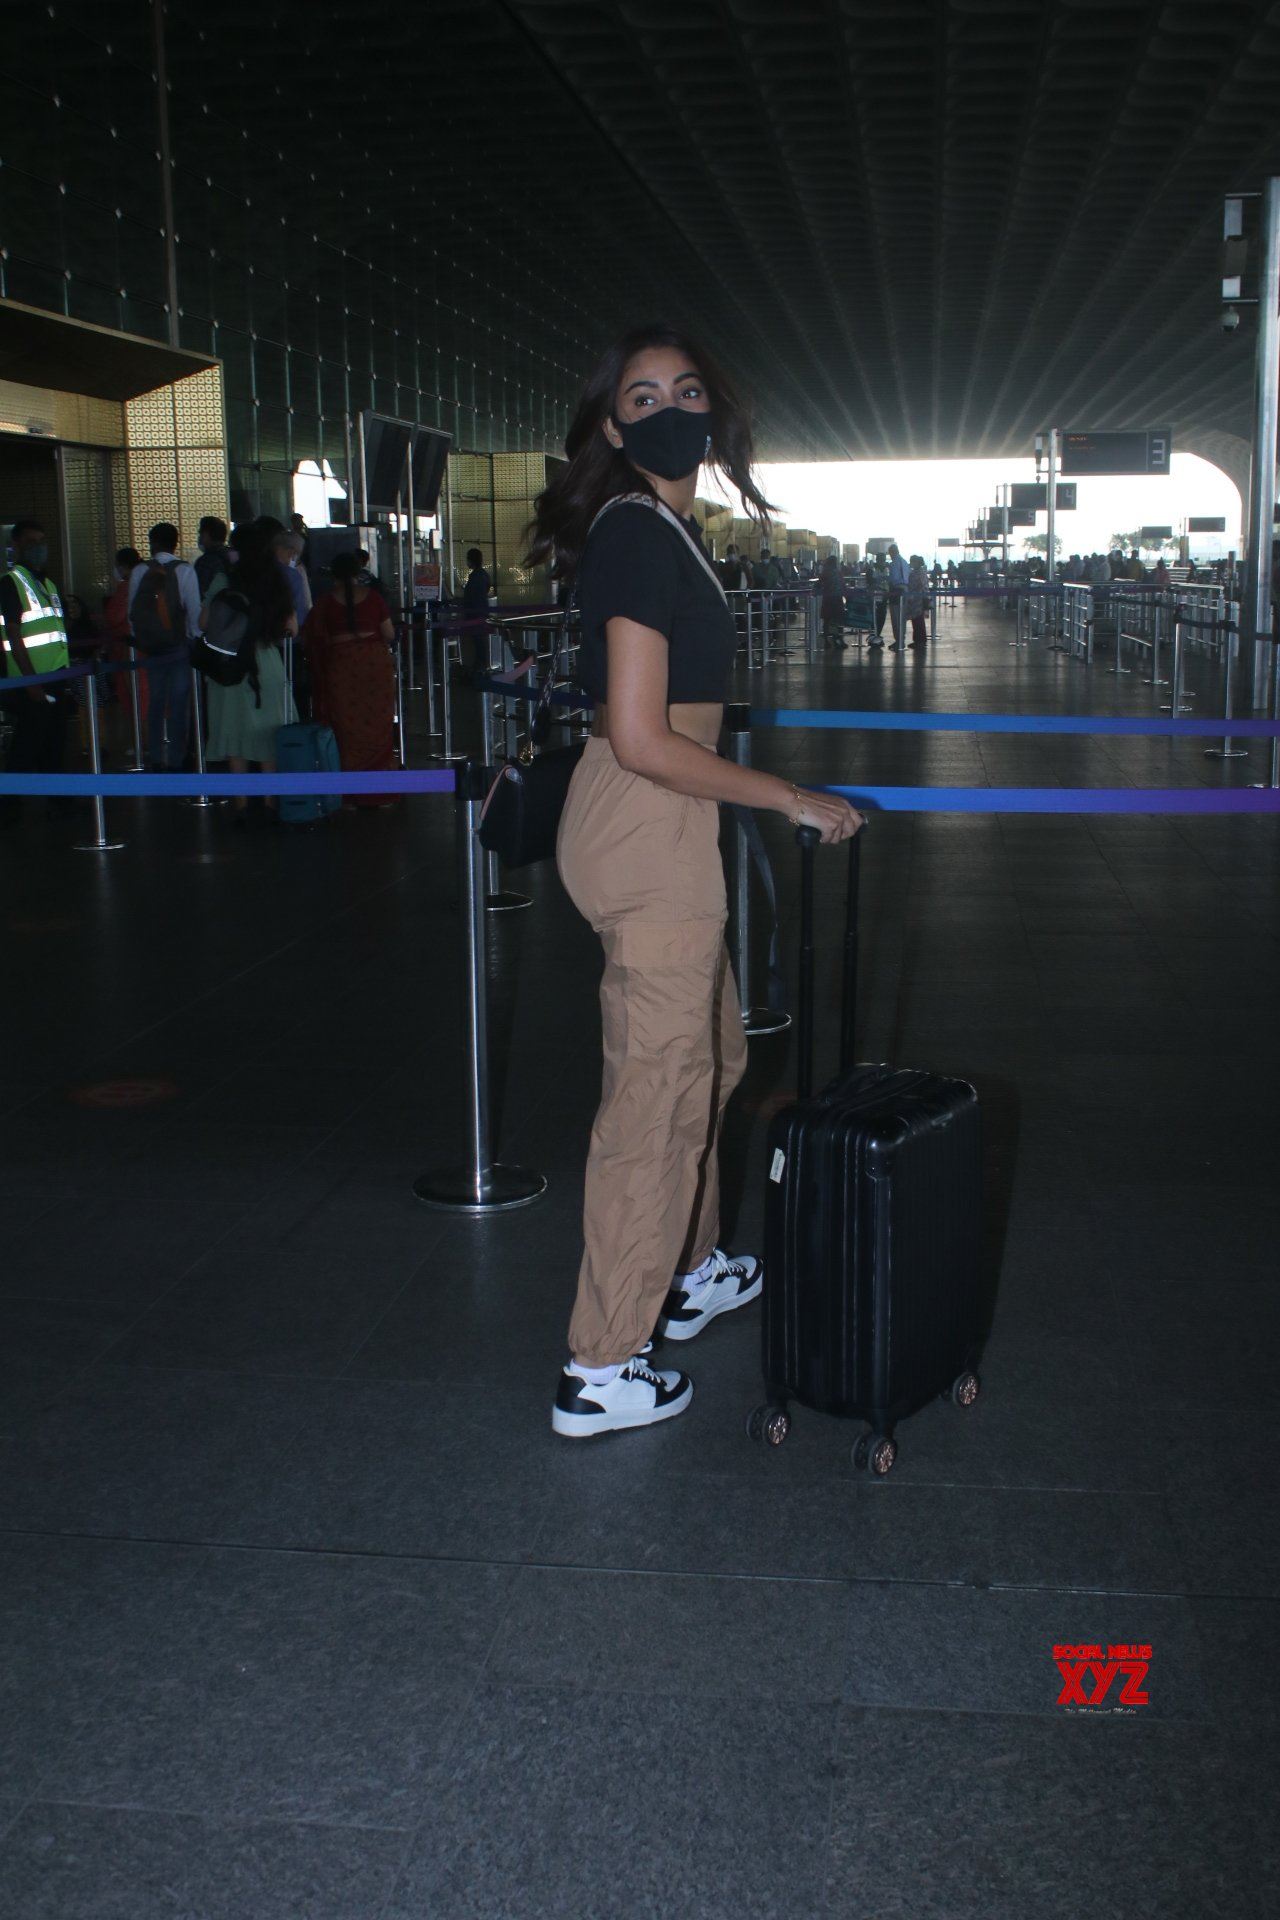 Actress Sana Makbul Spotted At Airport Departure - Gallery